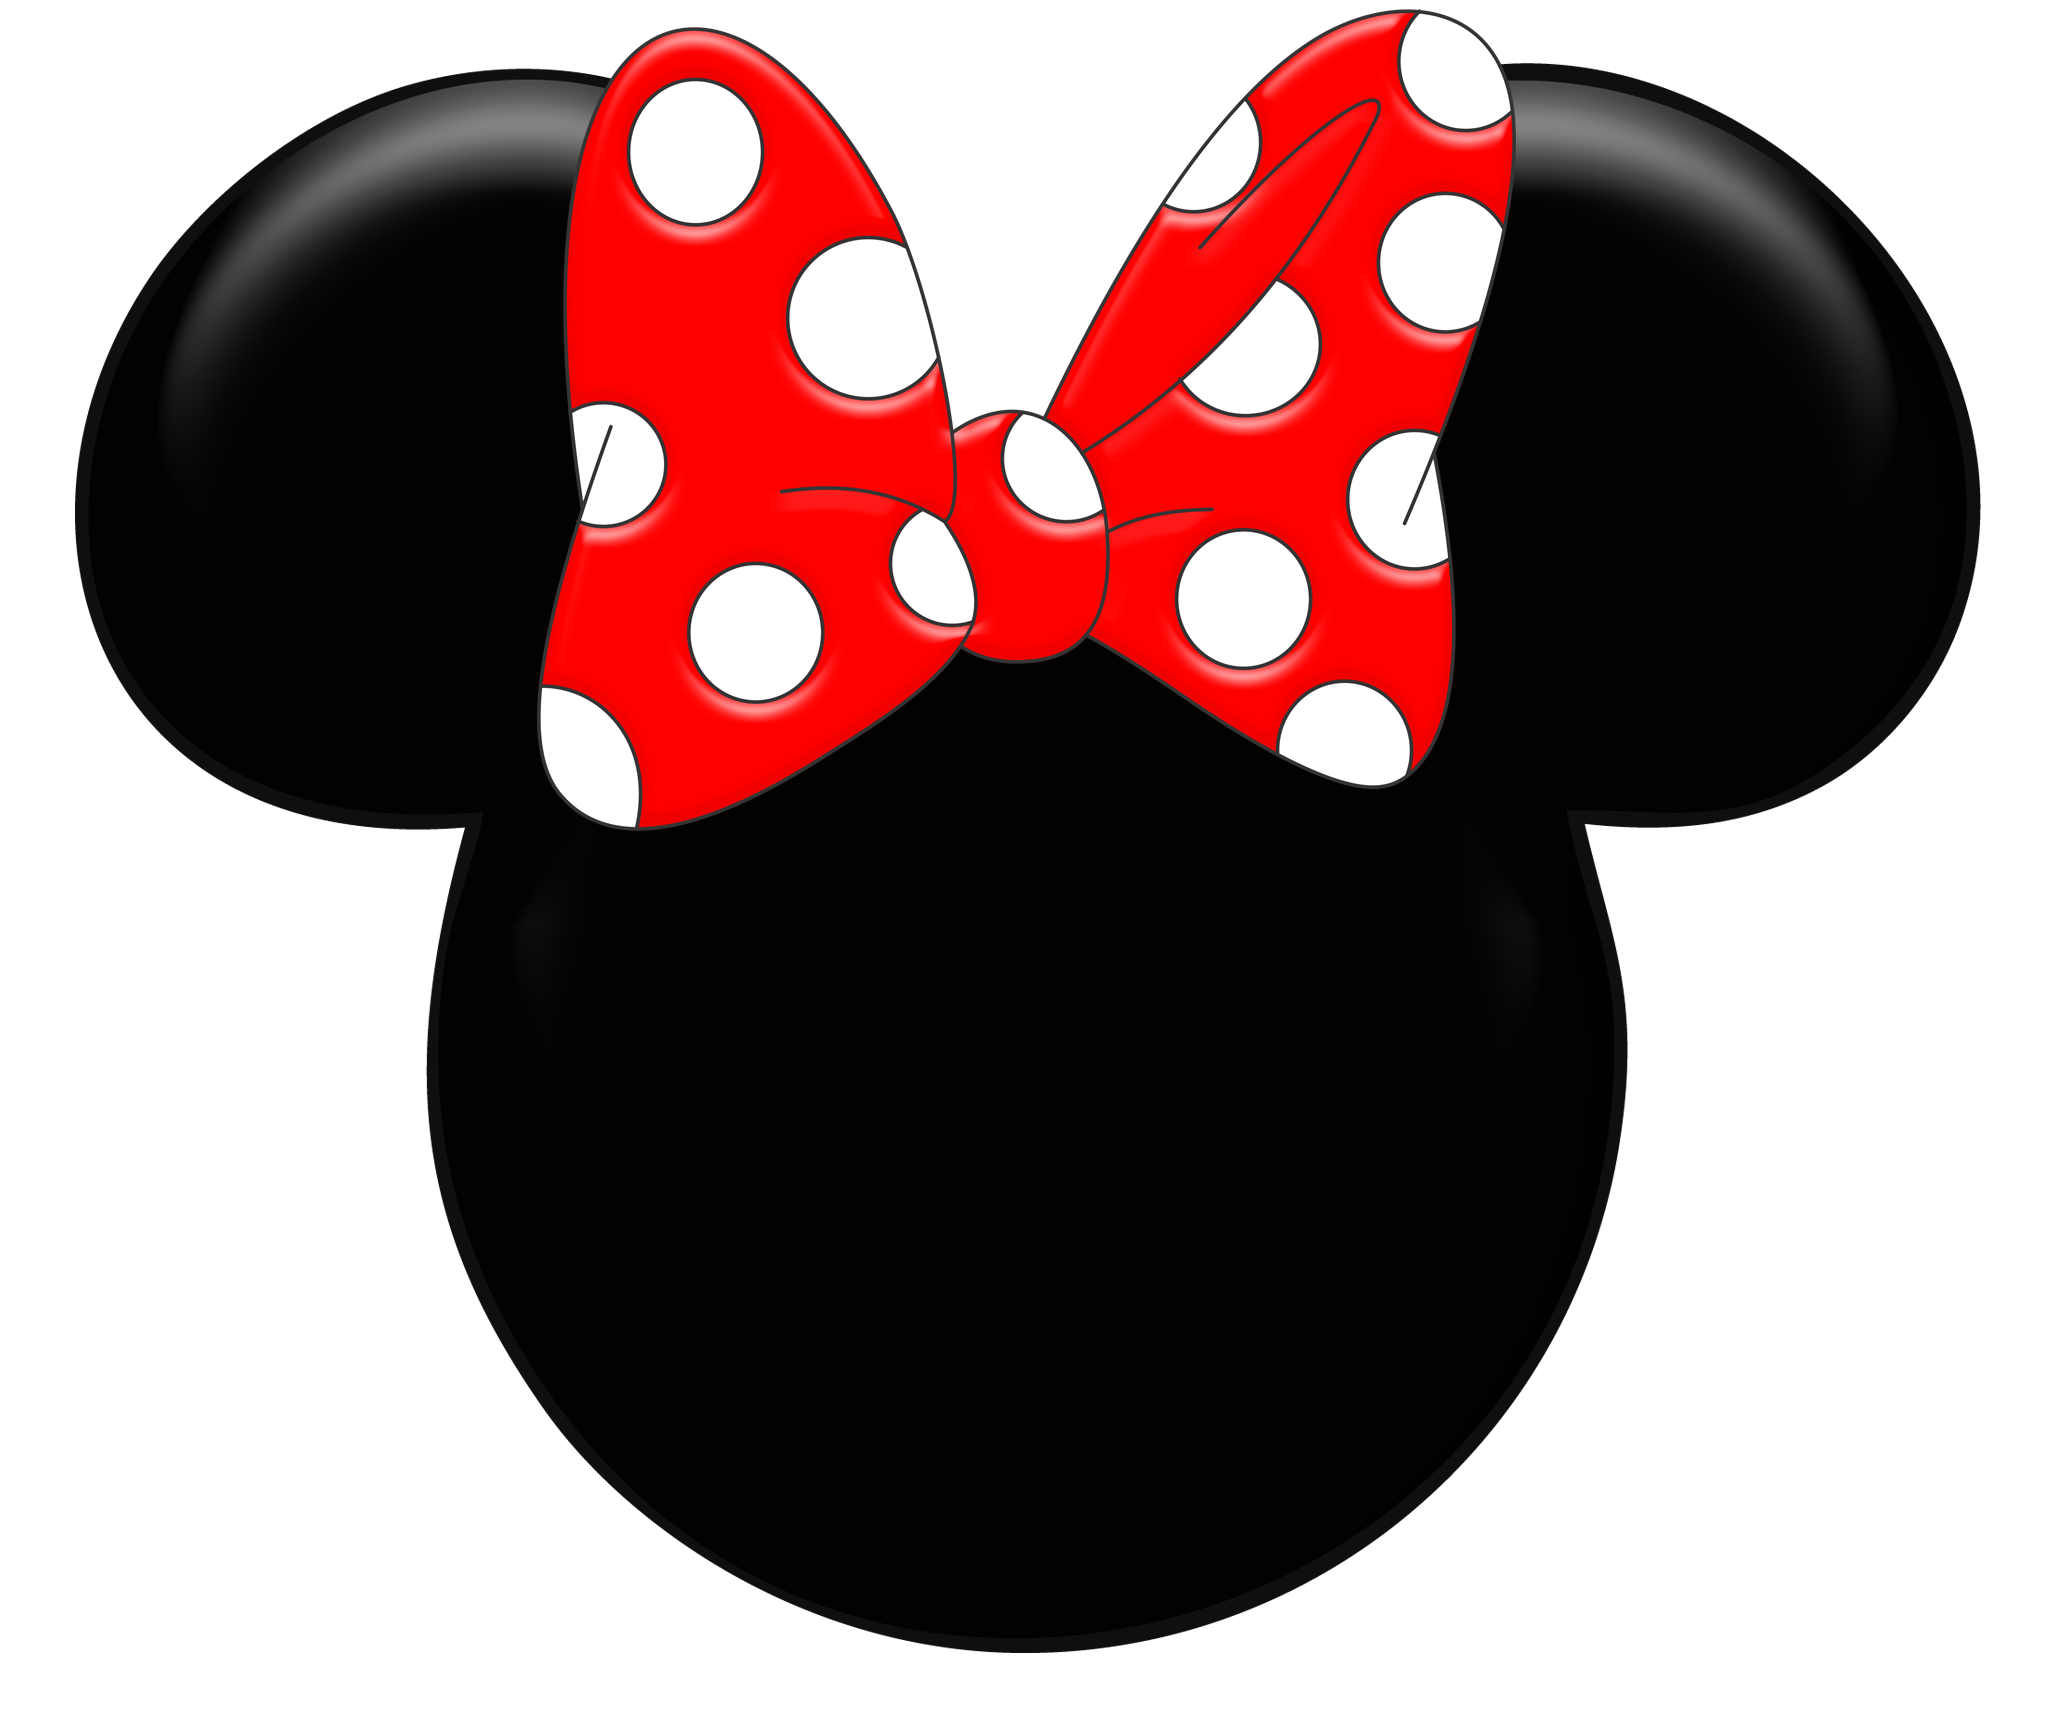 2054x1716 Sweet Minnie Mouse In Red With Tiny Polka Dots All Around